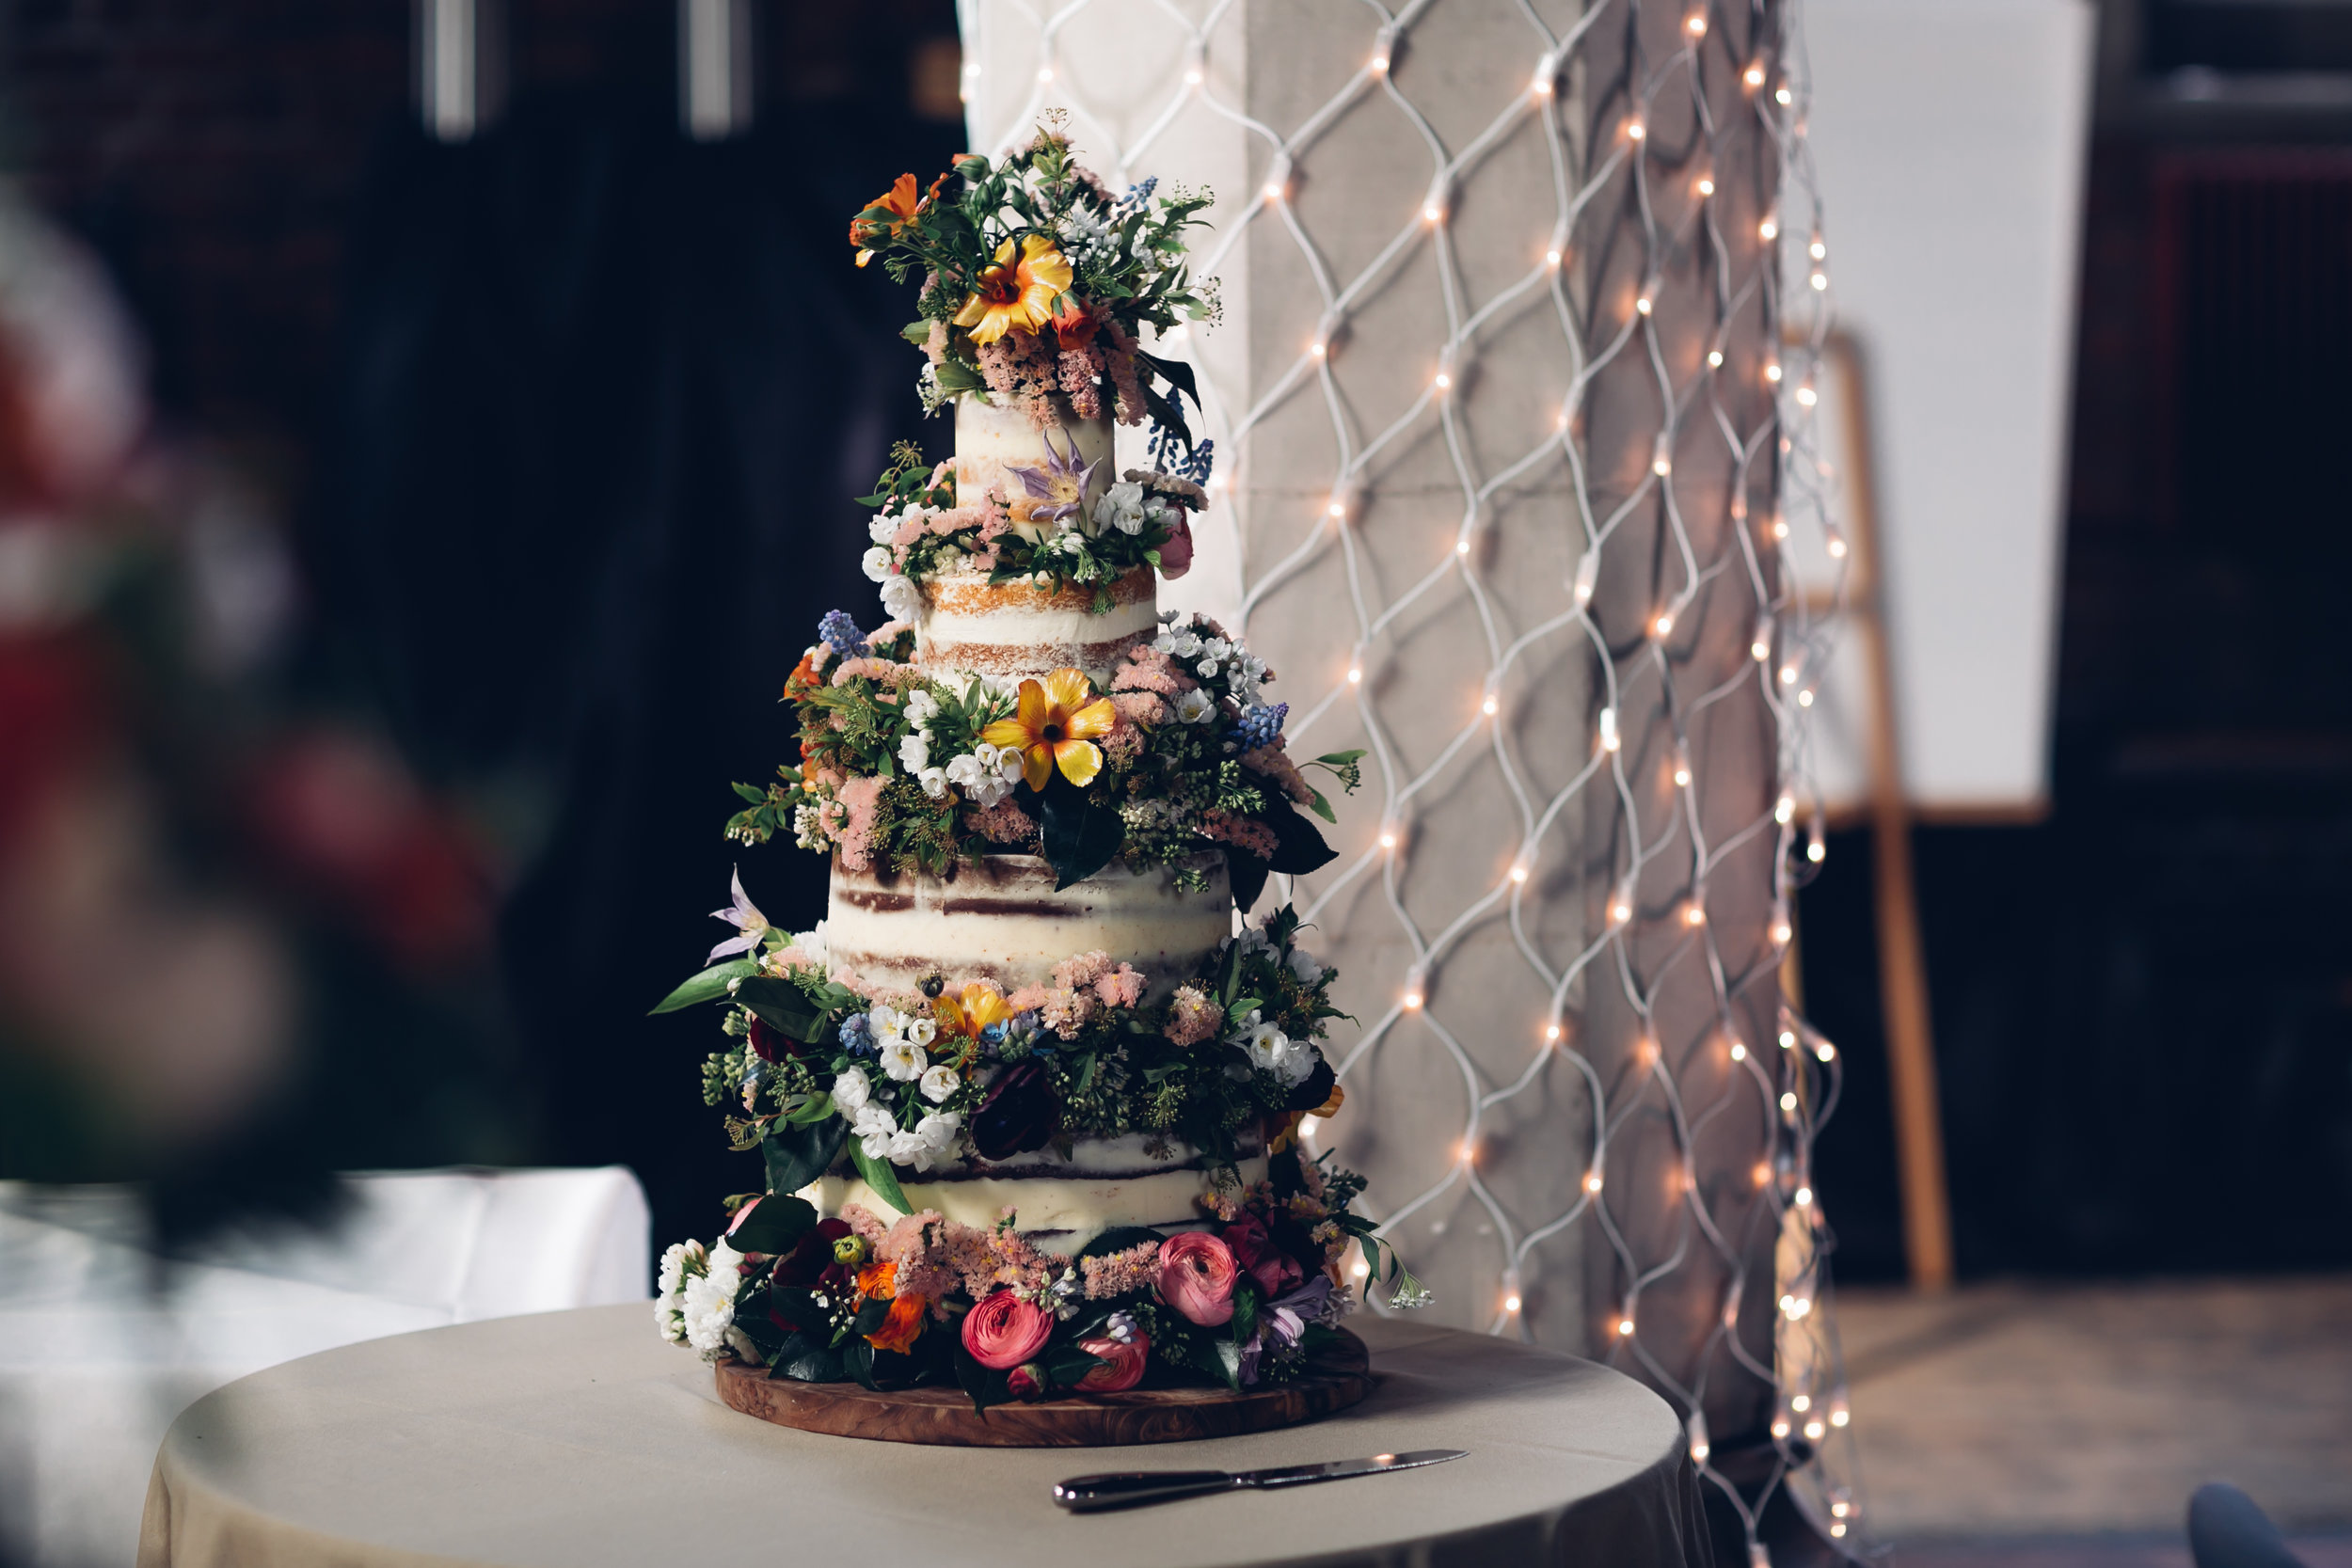 The Hill Food Company wedding cake photo credit @moeez.JPG